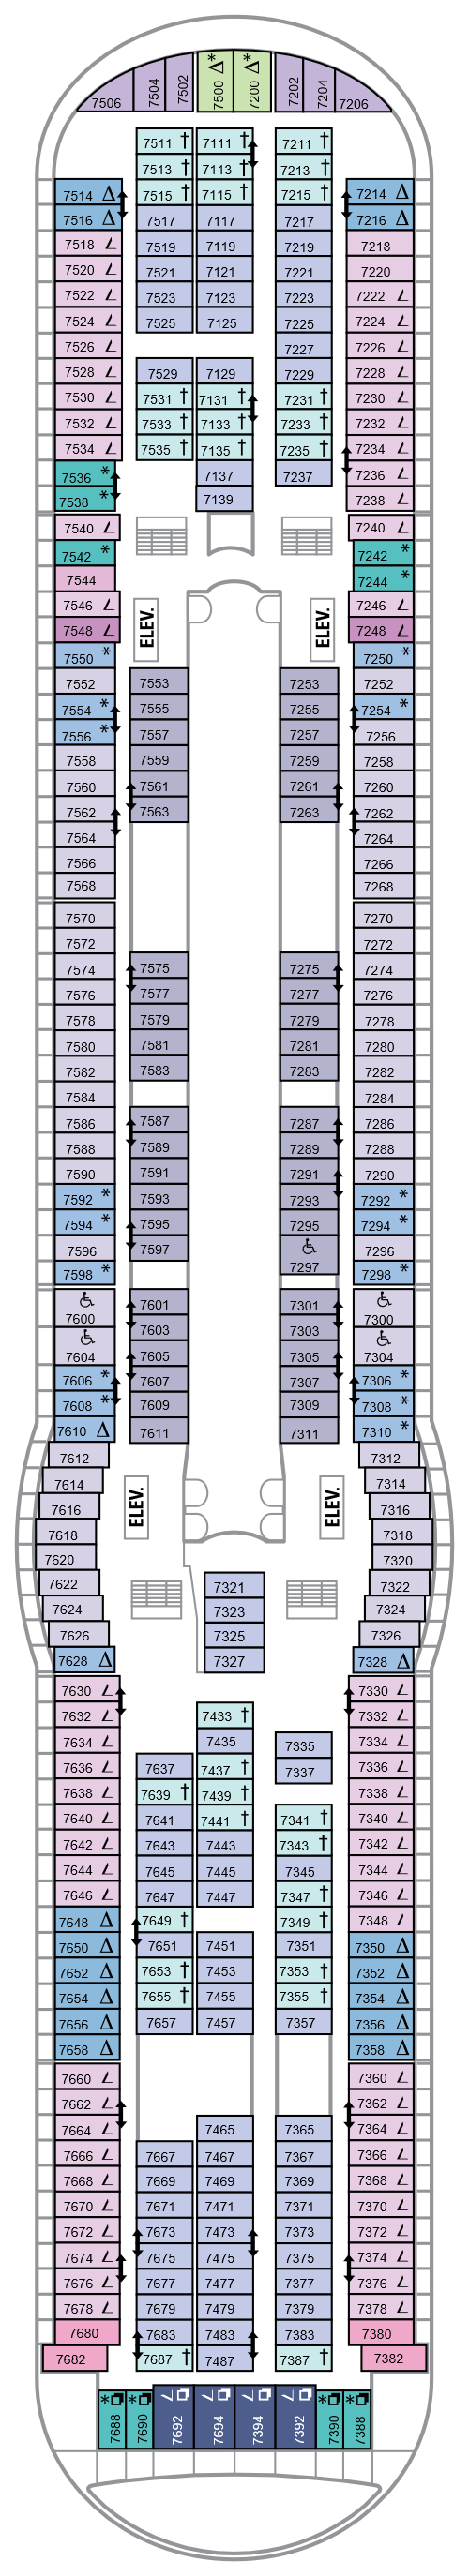 Mariner Of The Seas Deck 7 layout